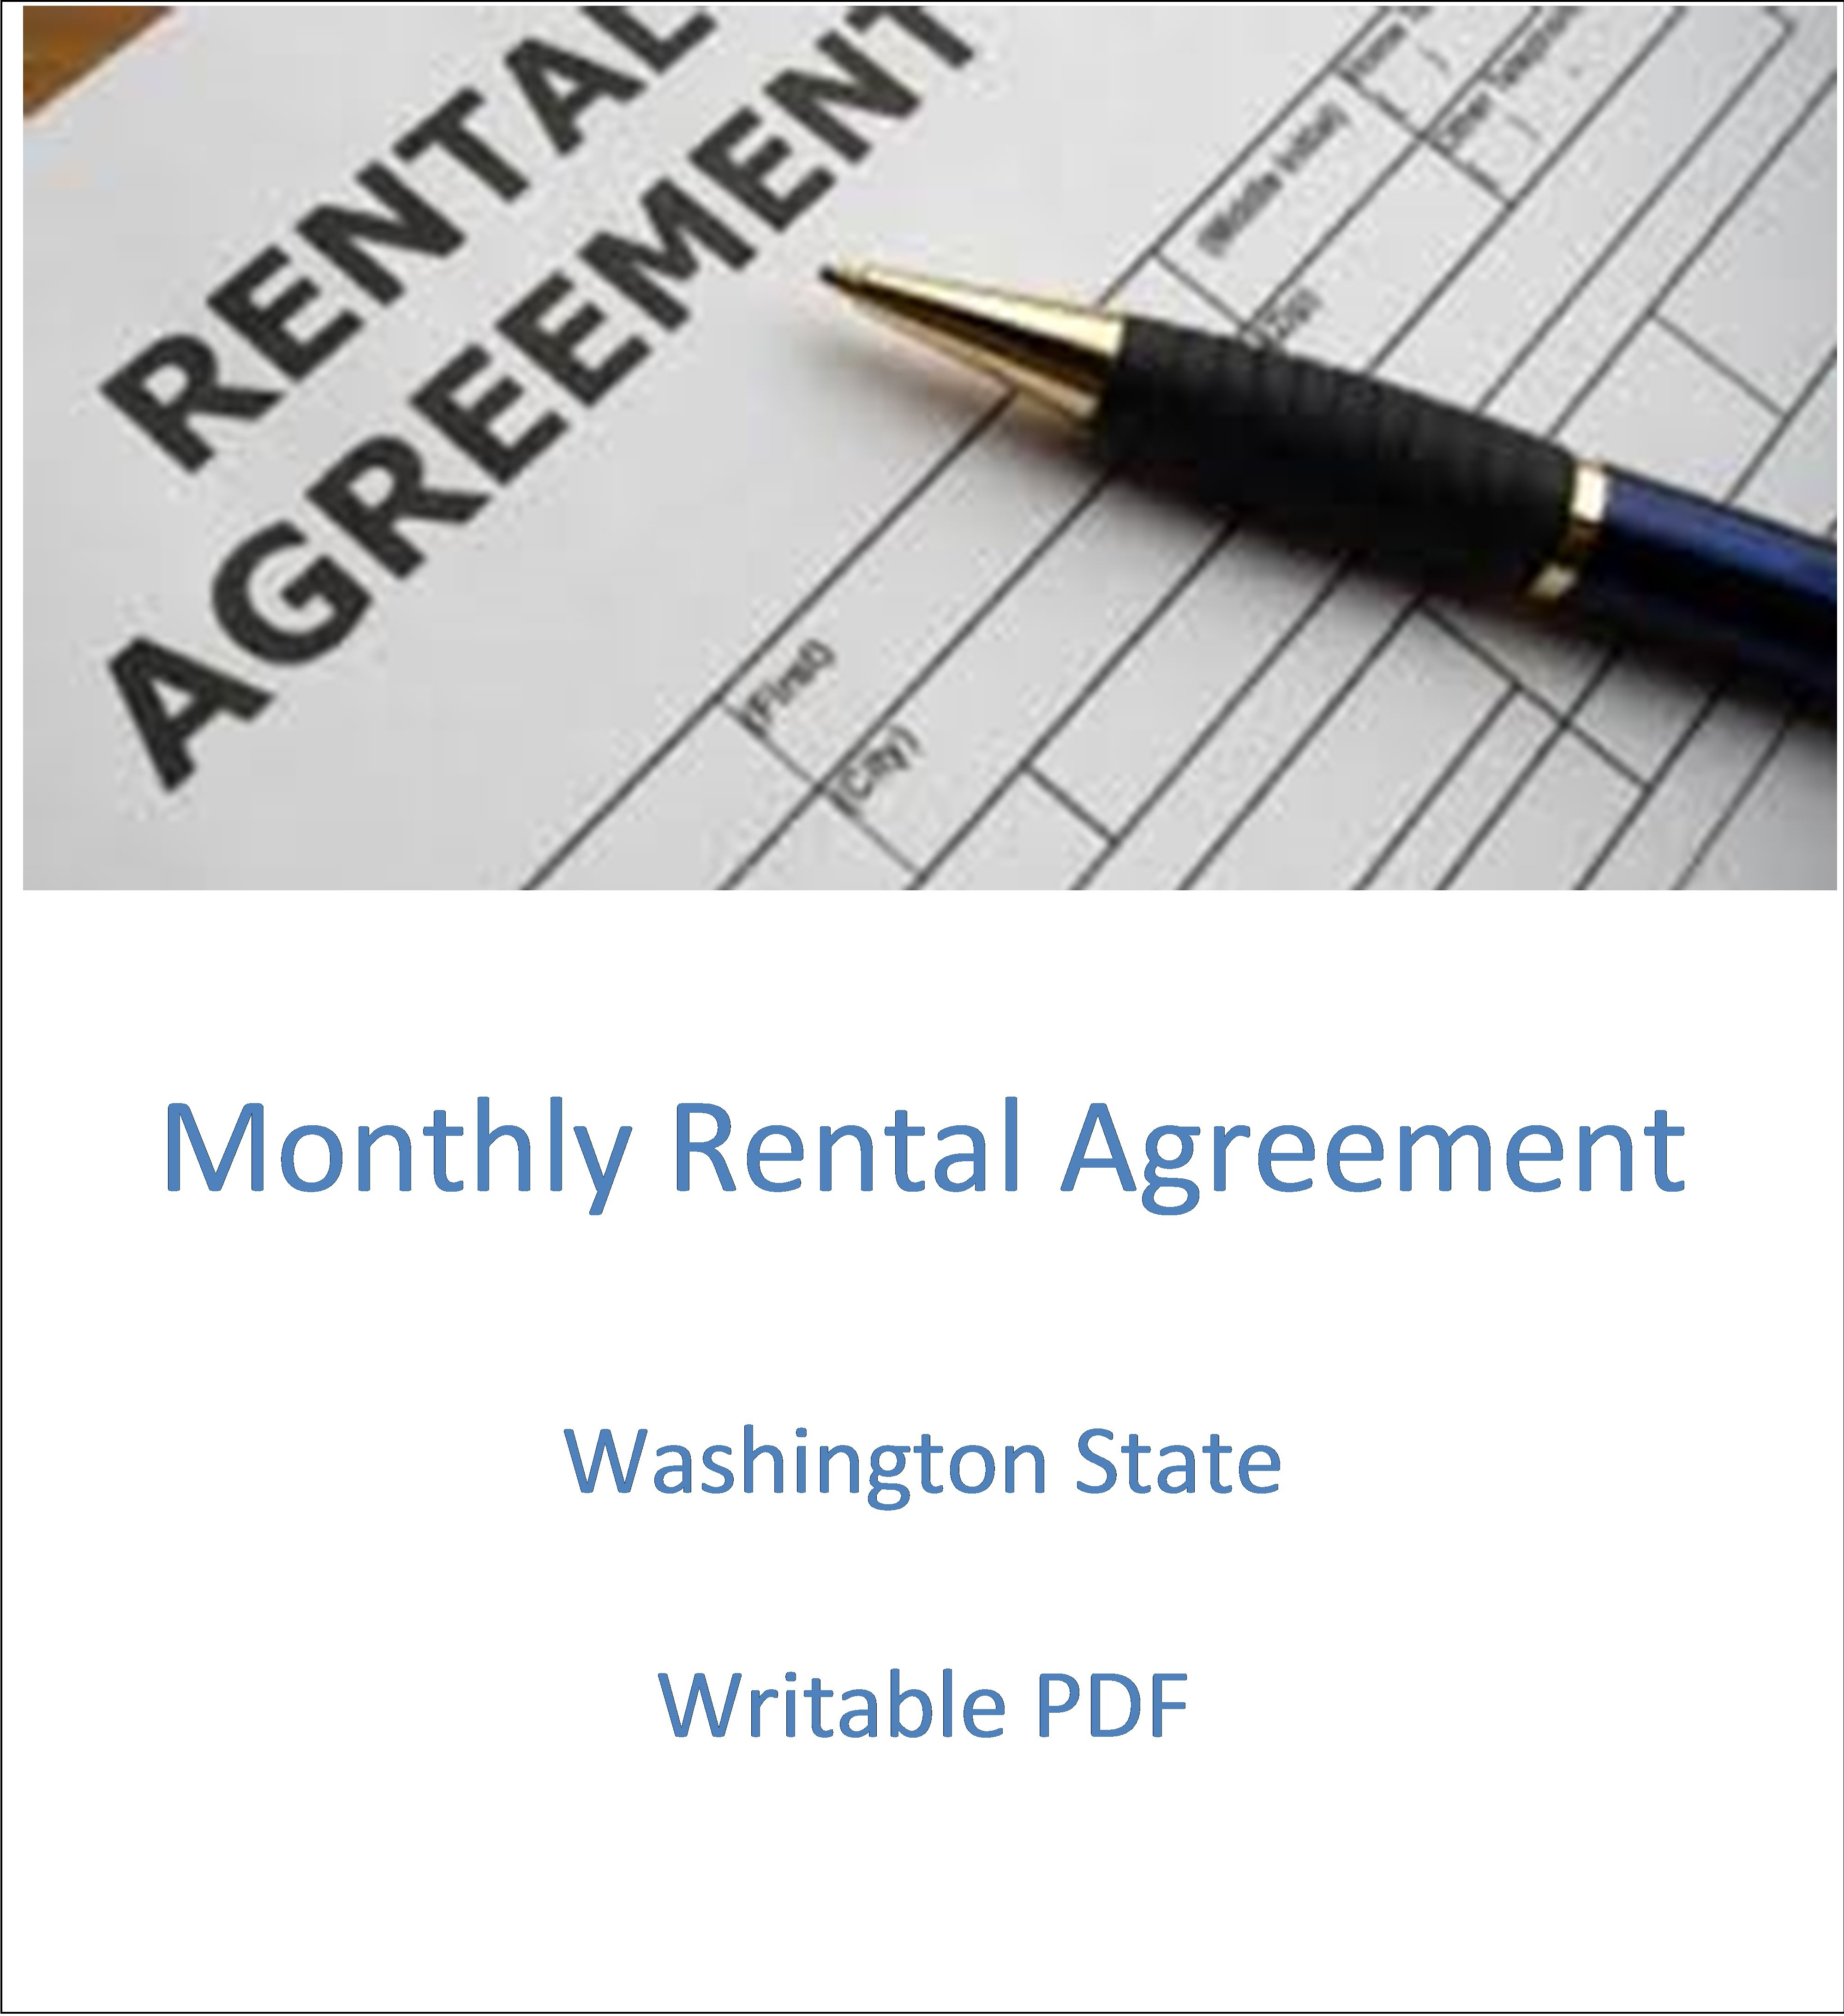 Monthly Rental Agreement Form Writable Pdf Renters Pass